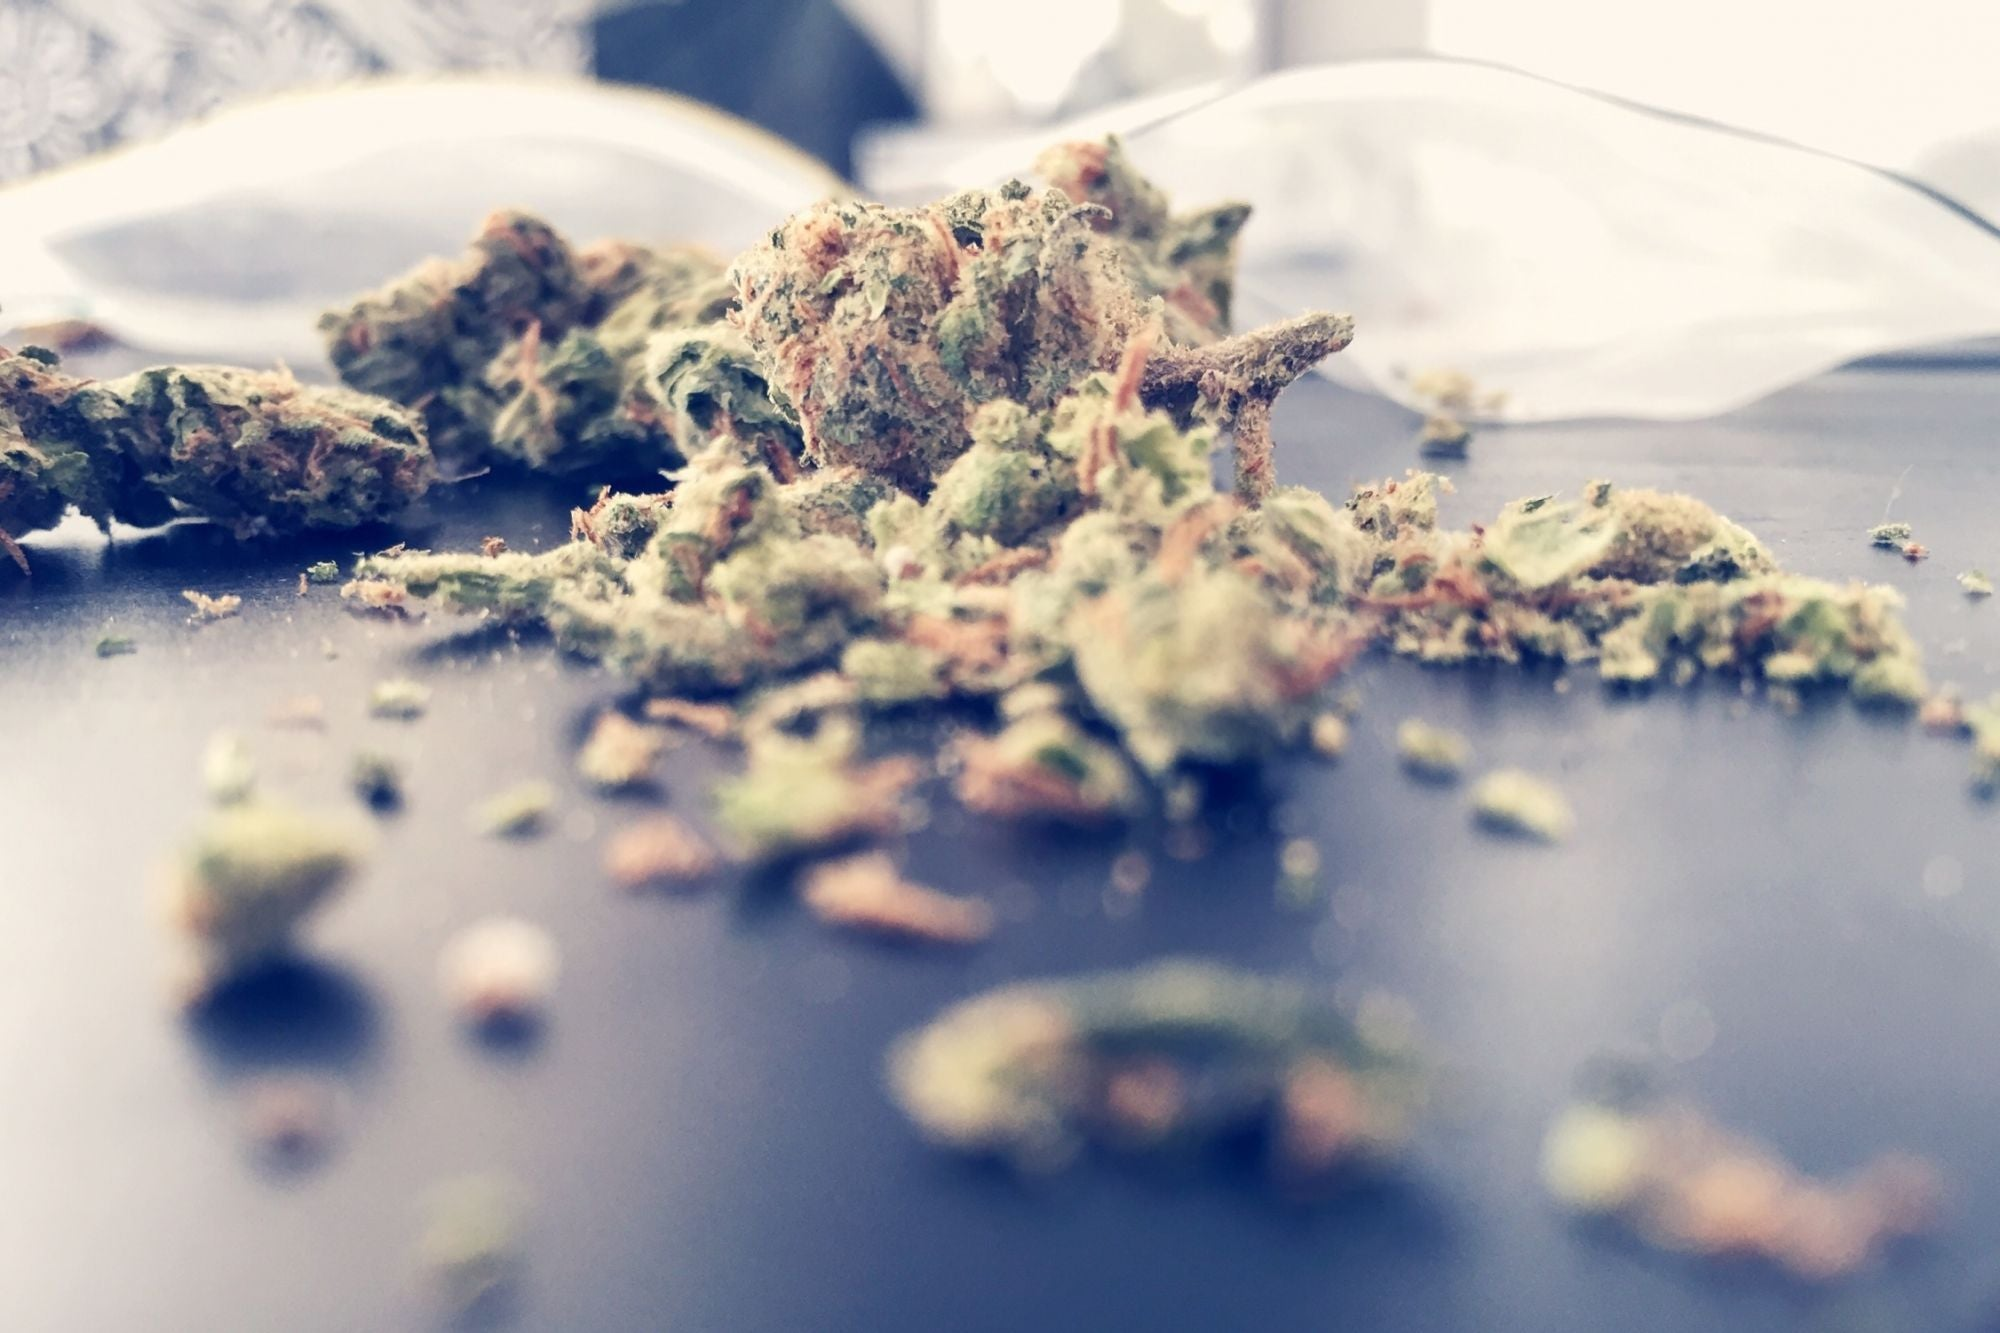 Compliance Is Cost Effective: 3 Common Ways Cannabis Operators Get in Trouble